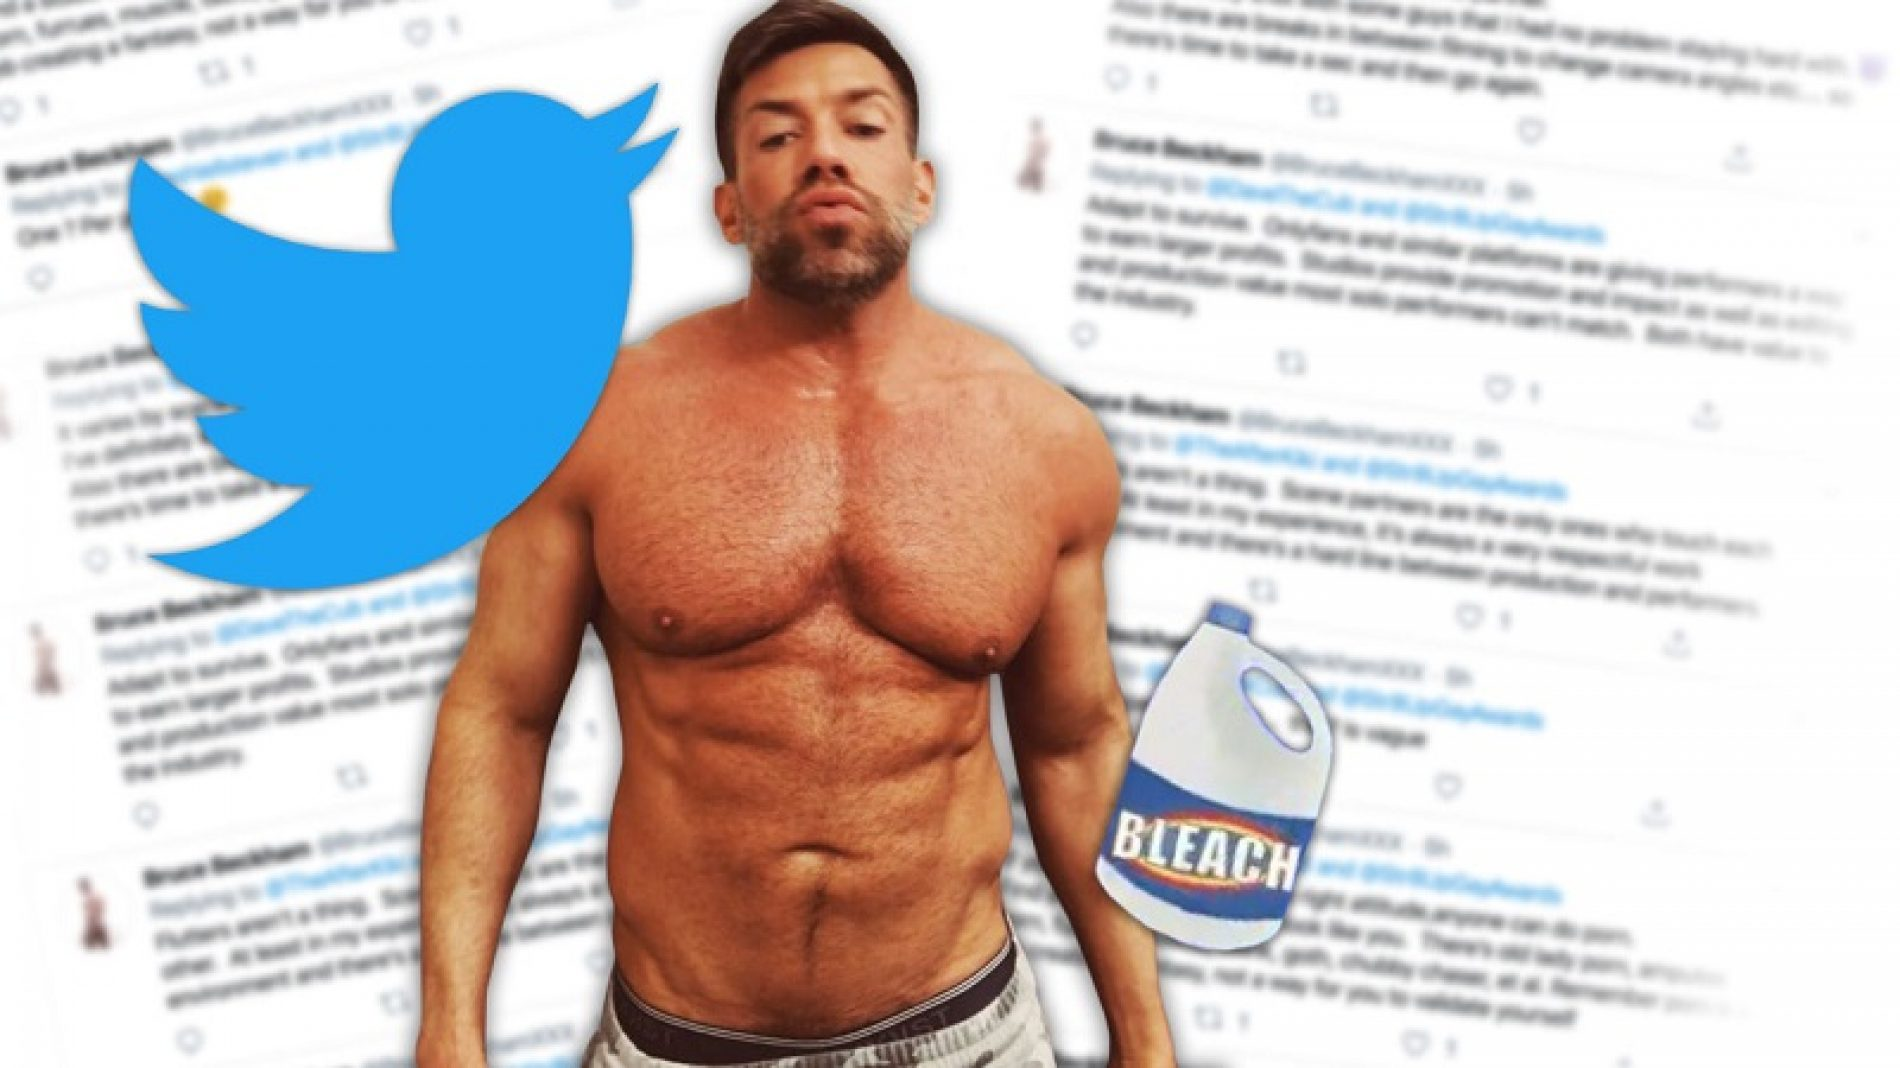 """Bottoms Call More Shots than Tops."" Porn Star Bruce Beckham Shares Industry Secrets In Twitter Q&A"